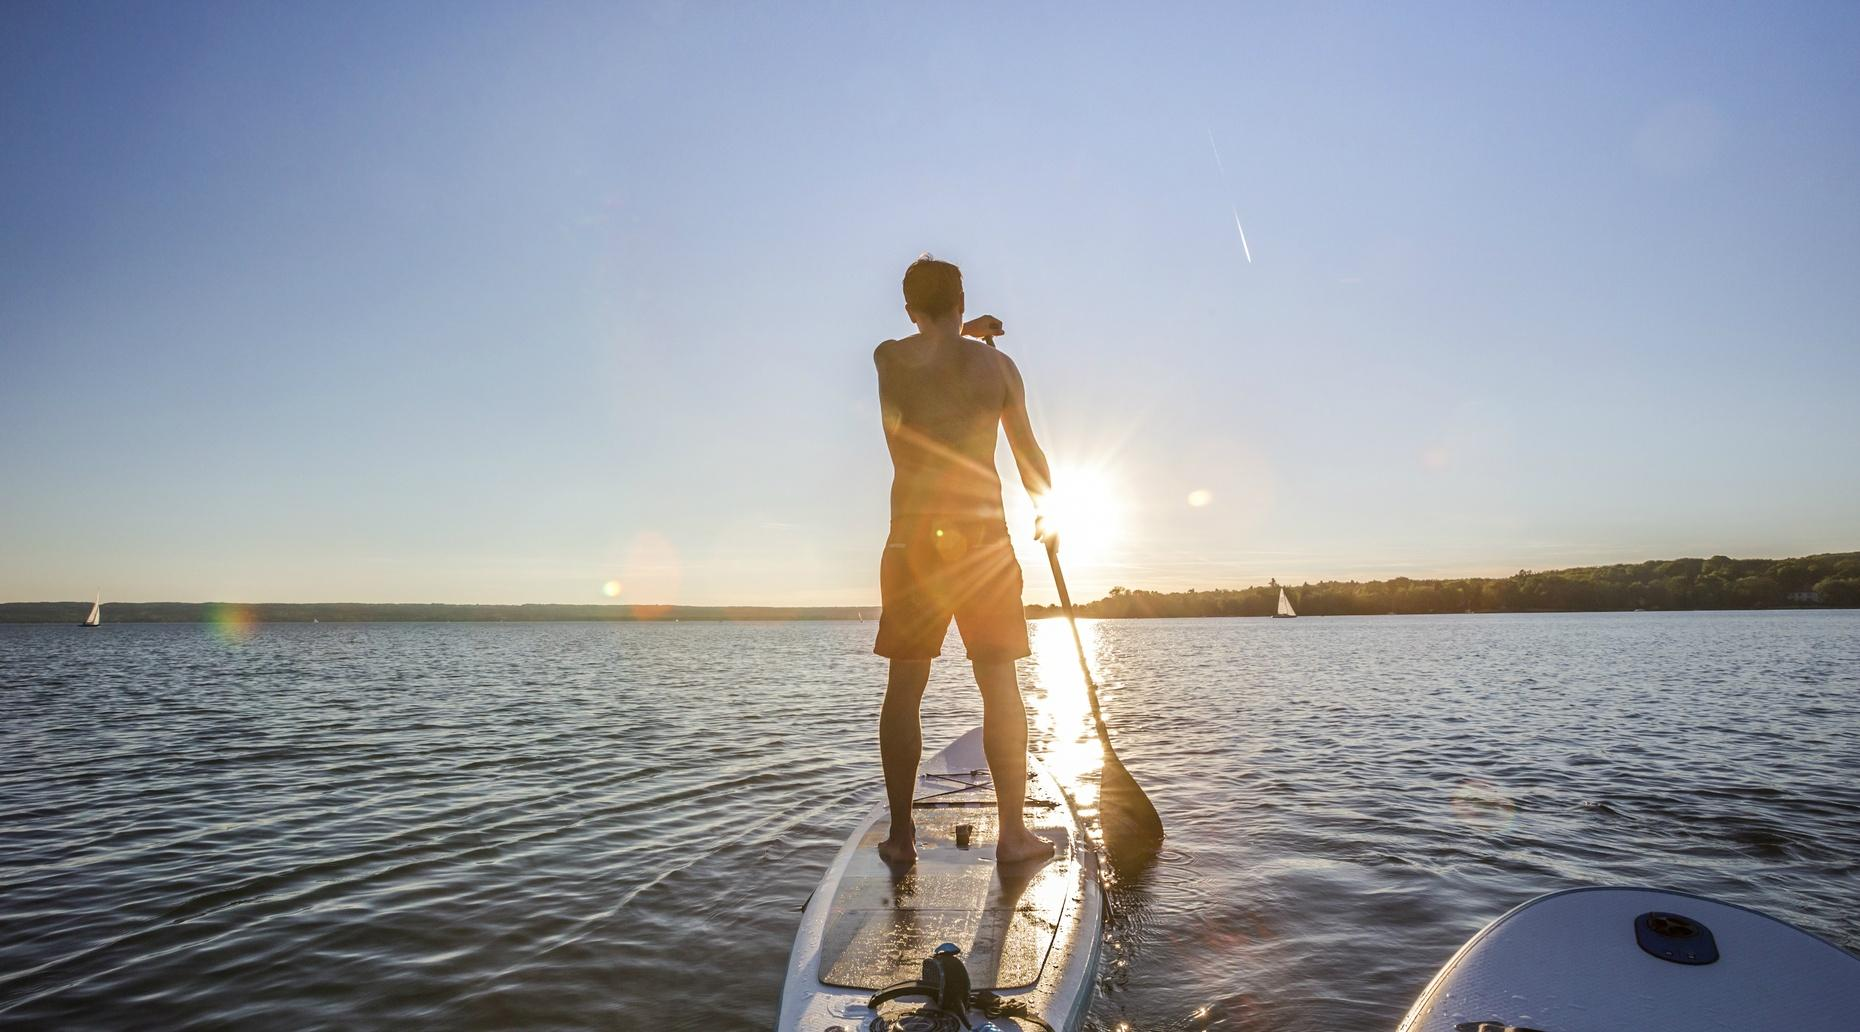 1-Hour Stand-Up Paddleboard Rental in Clinton